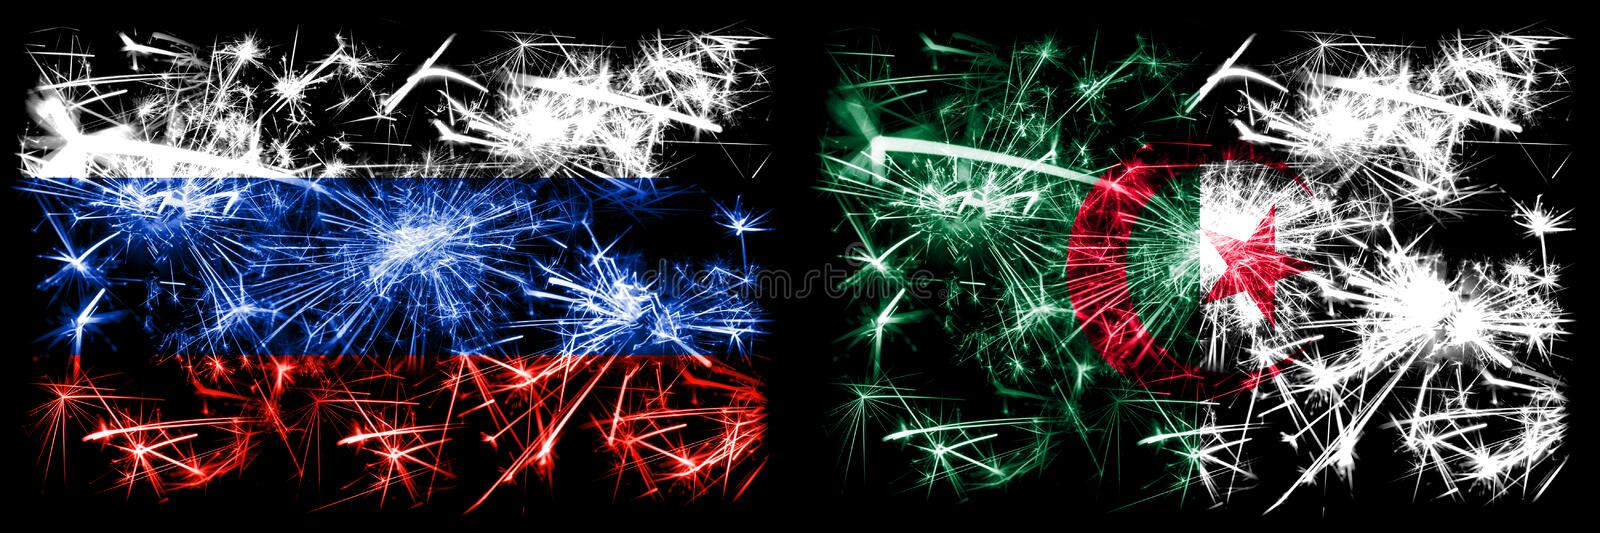 Russia, Russian vs Algeria, Algerian New Year celebration sparkling fireworks flags concept background. Combination of two states. Flags stock illustration